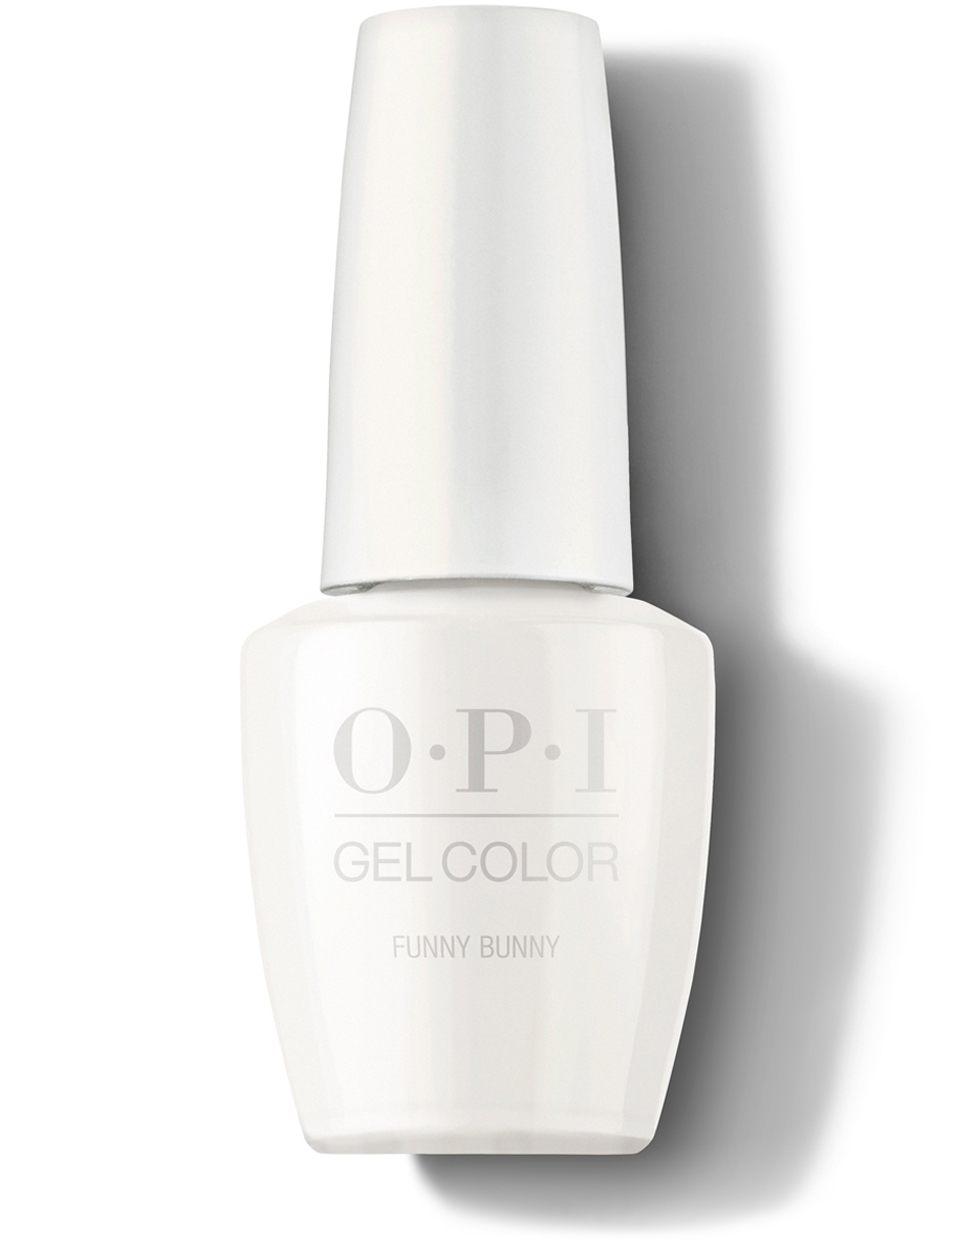 Funny Bunny - GelColor | OPI